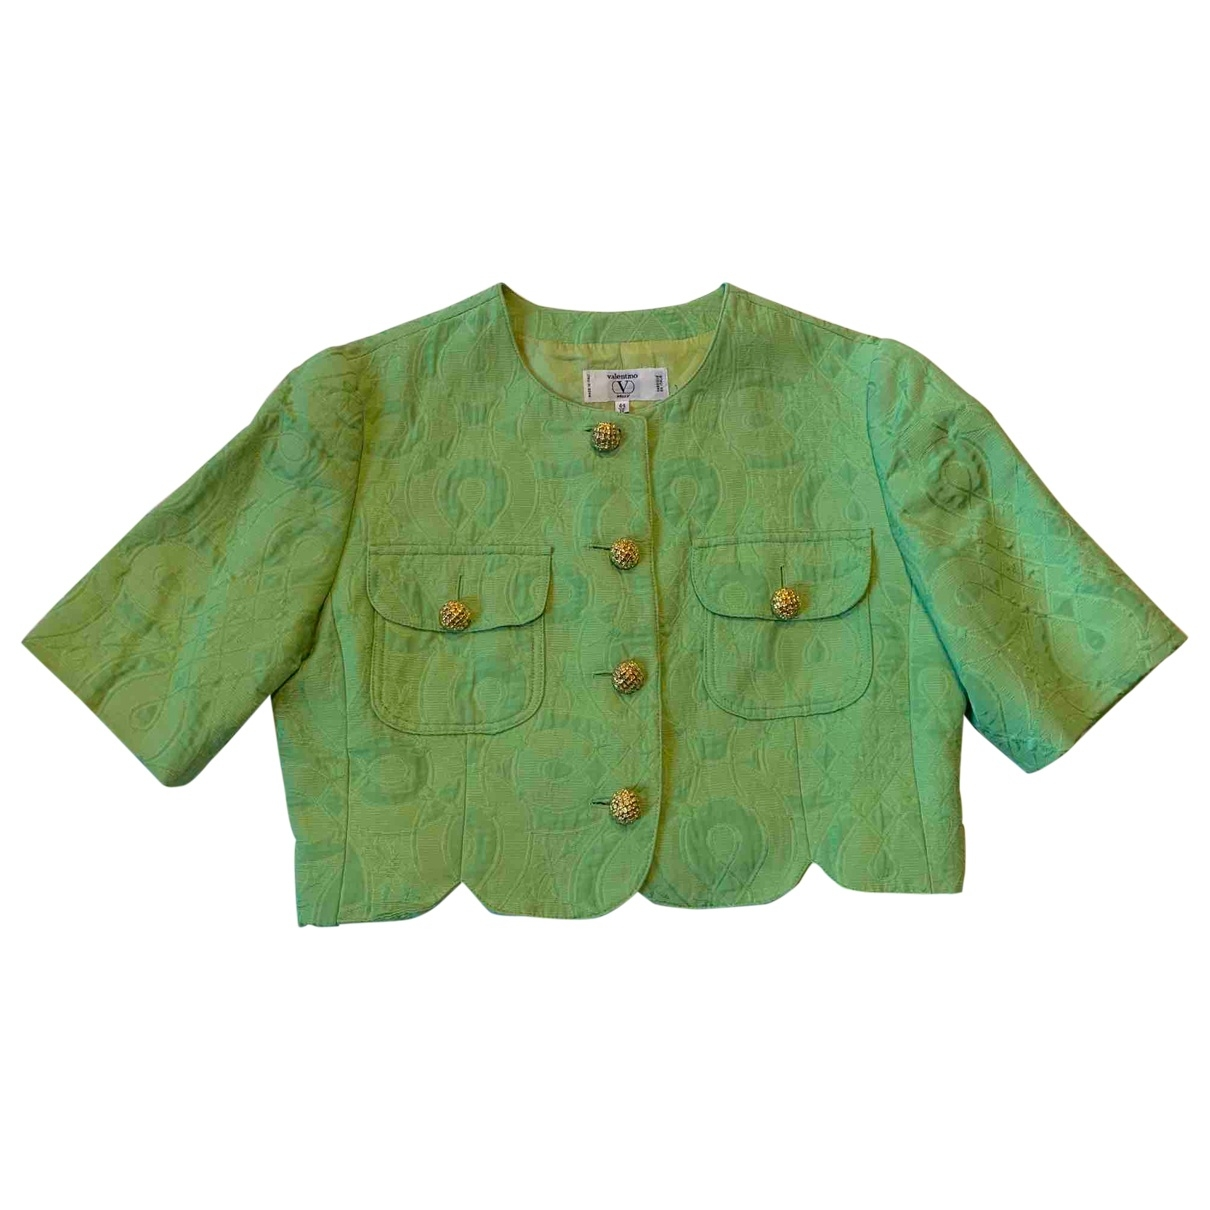 Valentino Garavani \N Green Cotton jacket for Women 44 IT